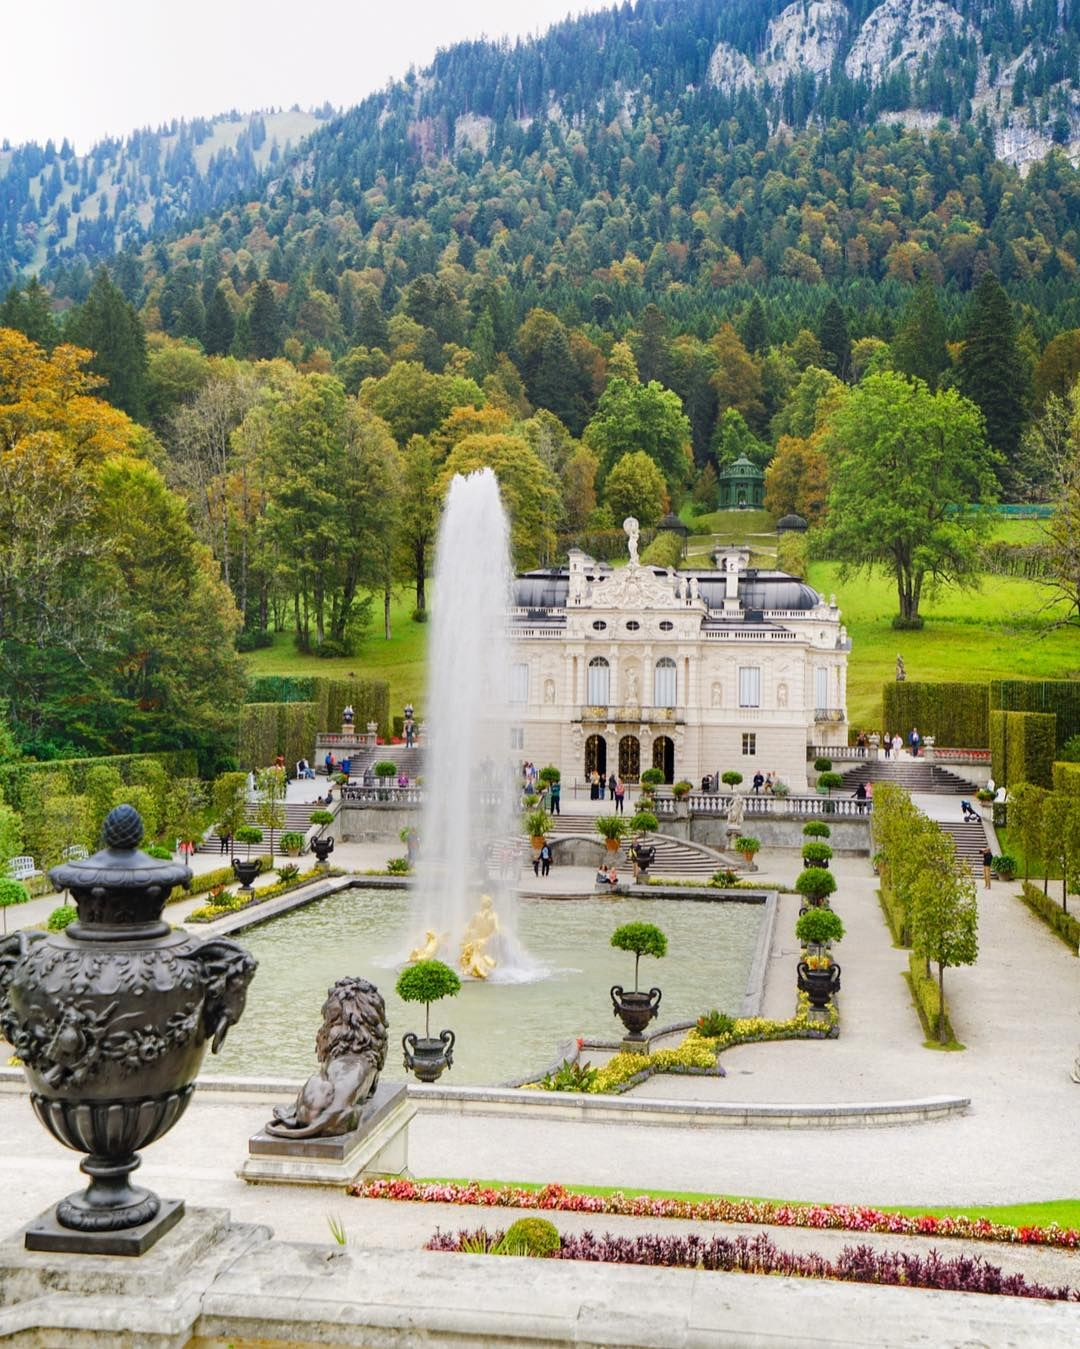 Guess I Ll Be Back To Germany This Coming October Excited To See Fall Colors This Photo Was Shot At Lind Linderhof Palace Fall Colors Beautiful Pictures